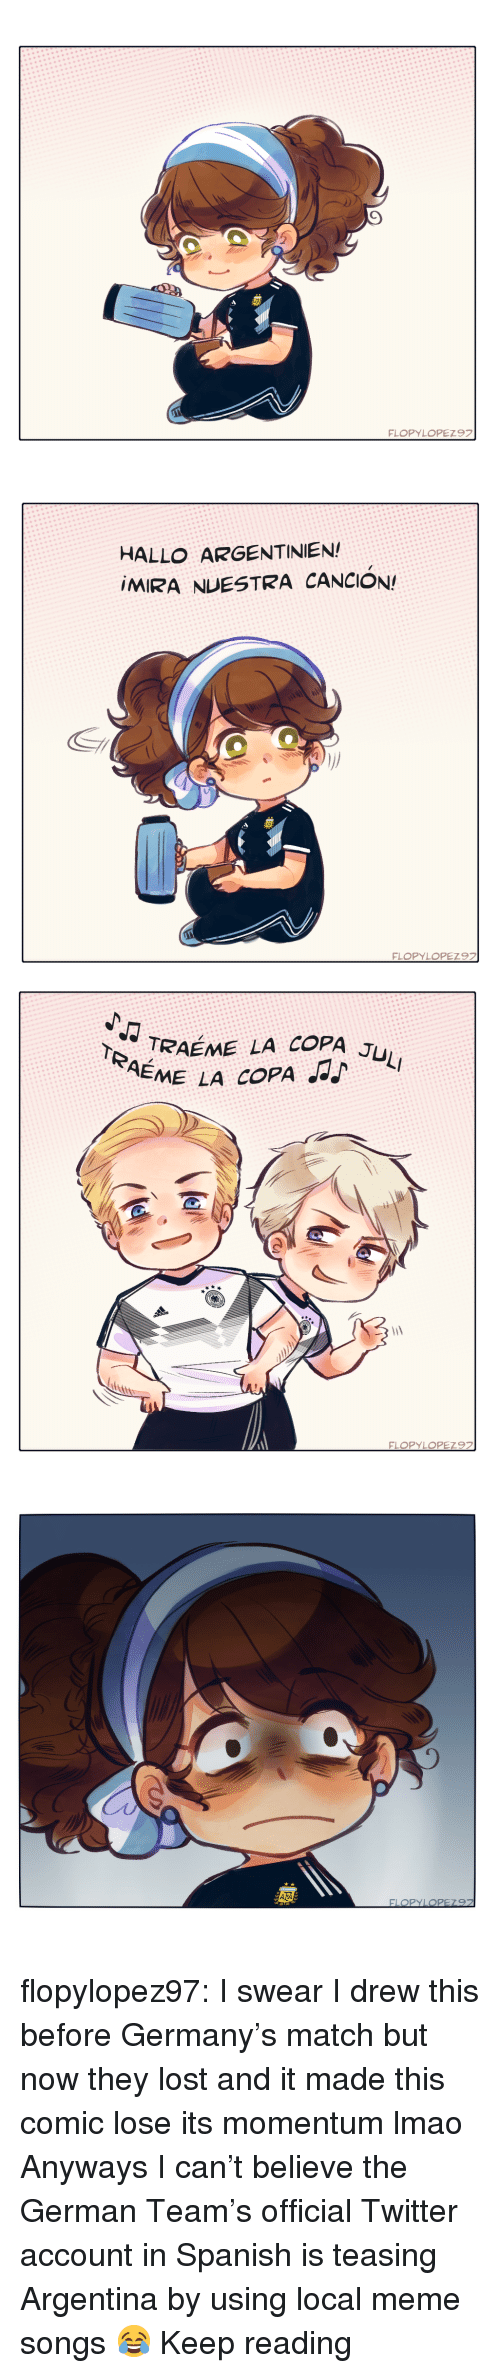 teasing: HALLO ARGENTINIEN  MIRA NUESTRA CANCION!   TRAEME LA COPA J  EME LA COPA flopylopez97:  I swear I drew this before Germany's match but now they lost and it made this comic lose its momentum lmao   Anyways I can't believe the German Team's official Twitter account in Spanish is teasing Argentina by using local meme songs   😂    Keep reading